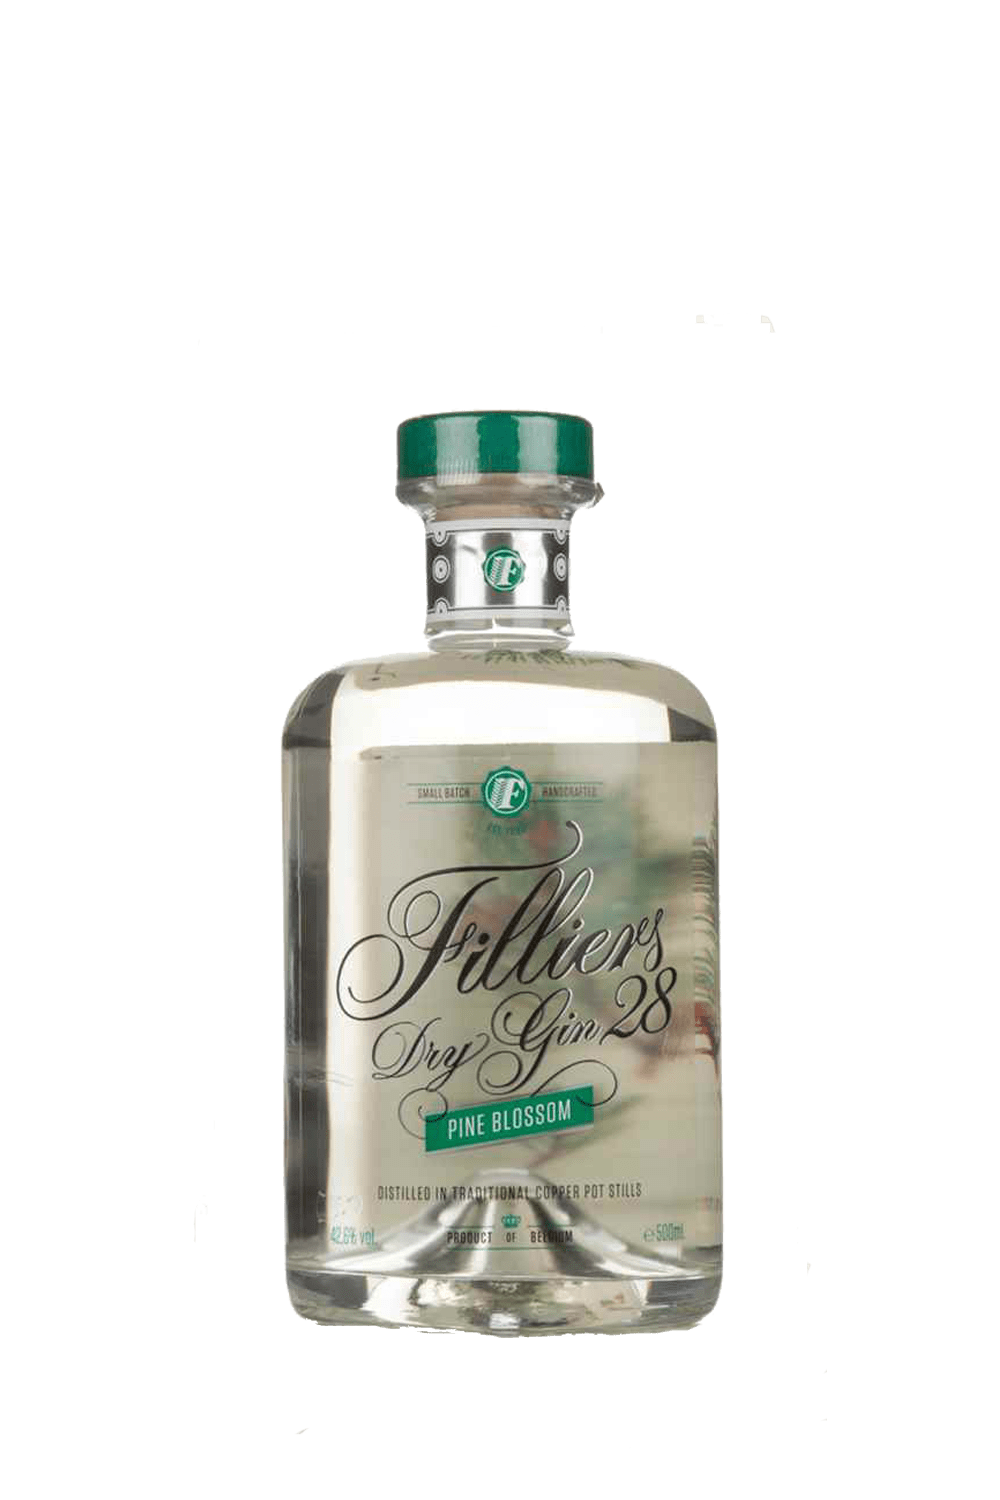 Filliers Dry 28 Pine Blossom